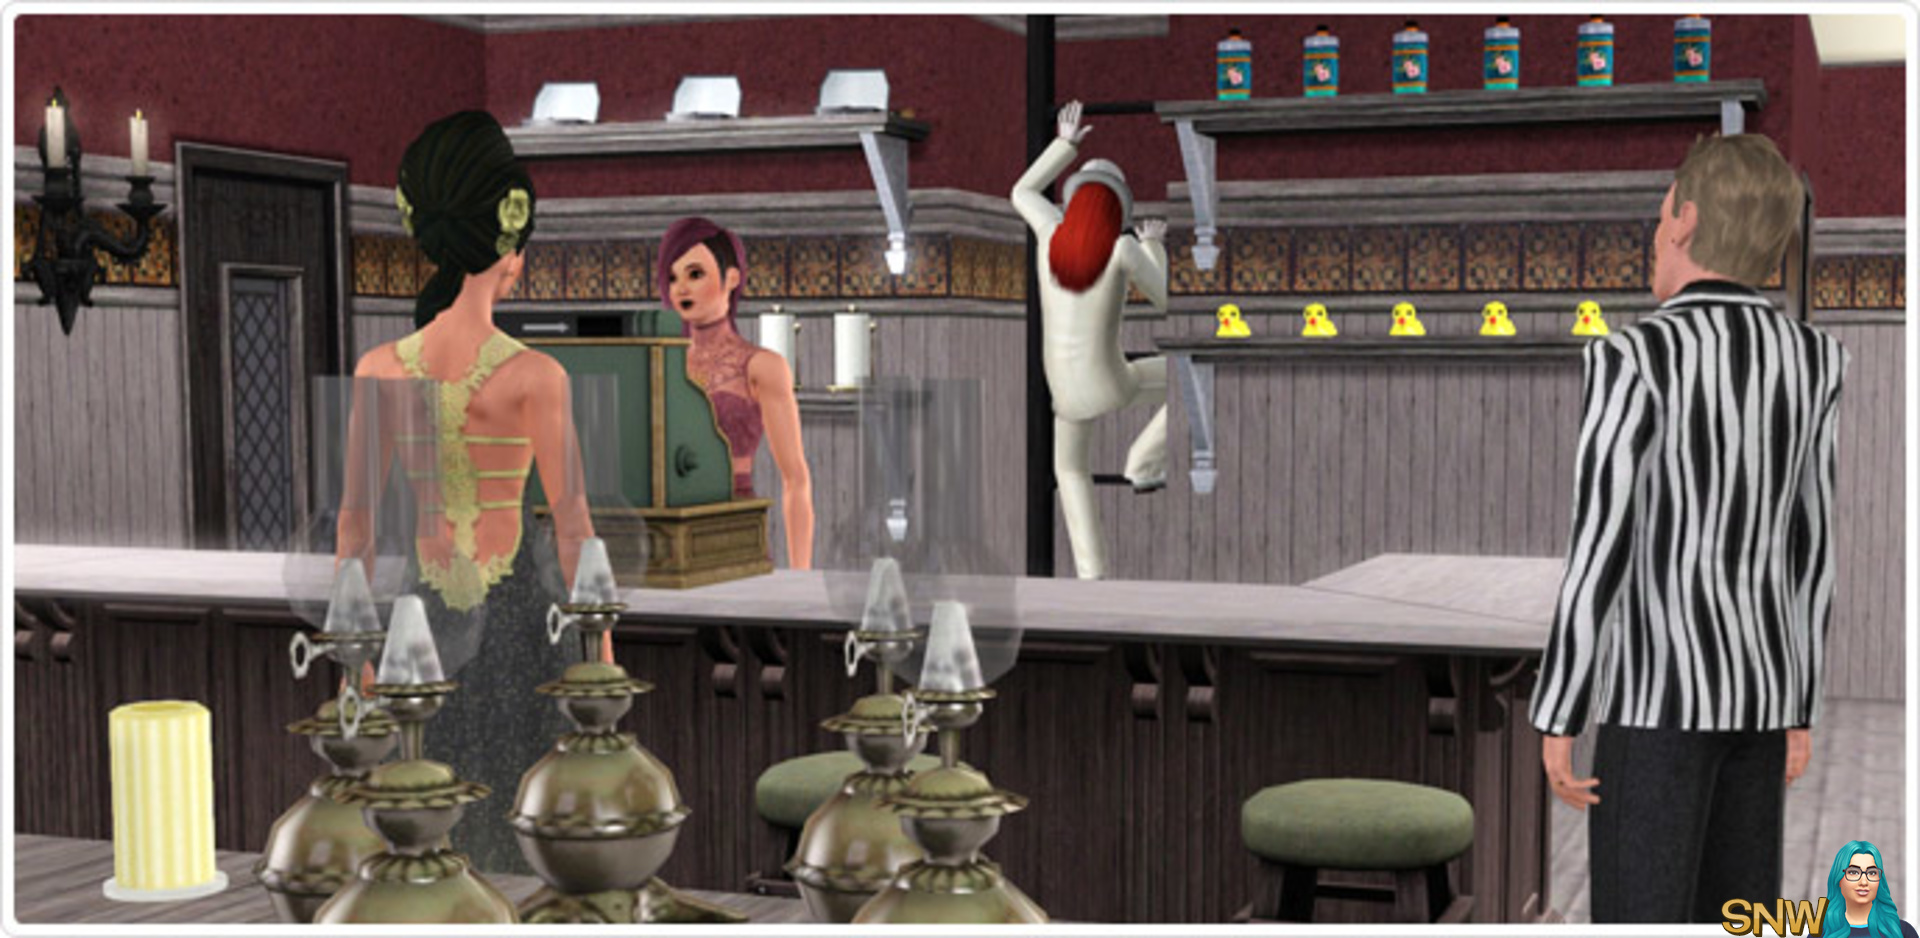 Sims 2 sex rug download exposed download